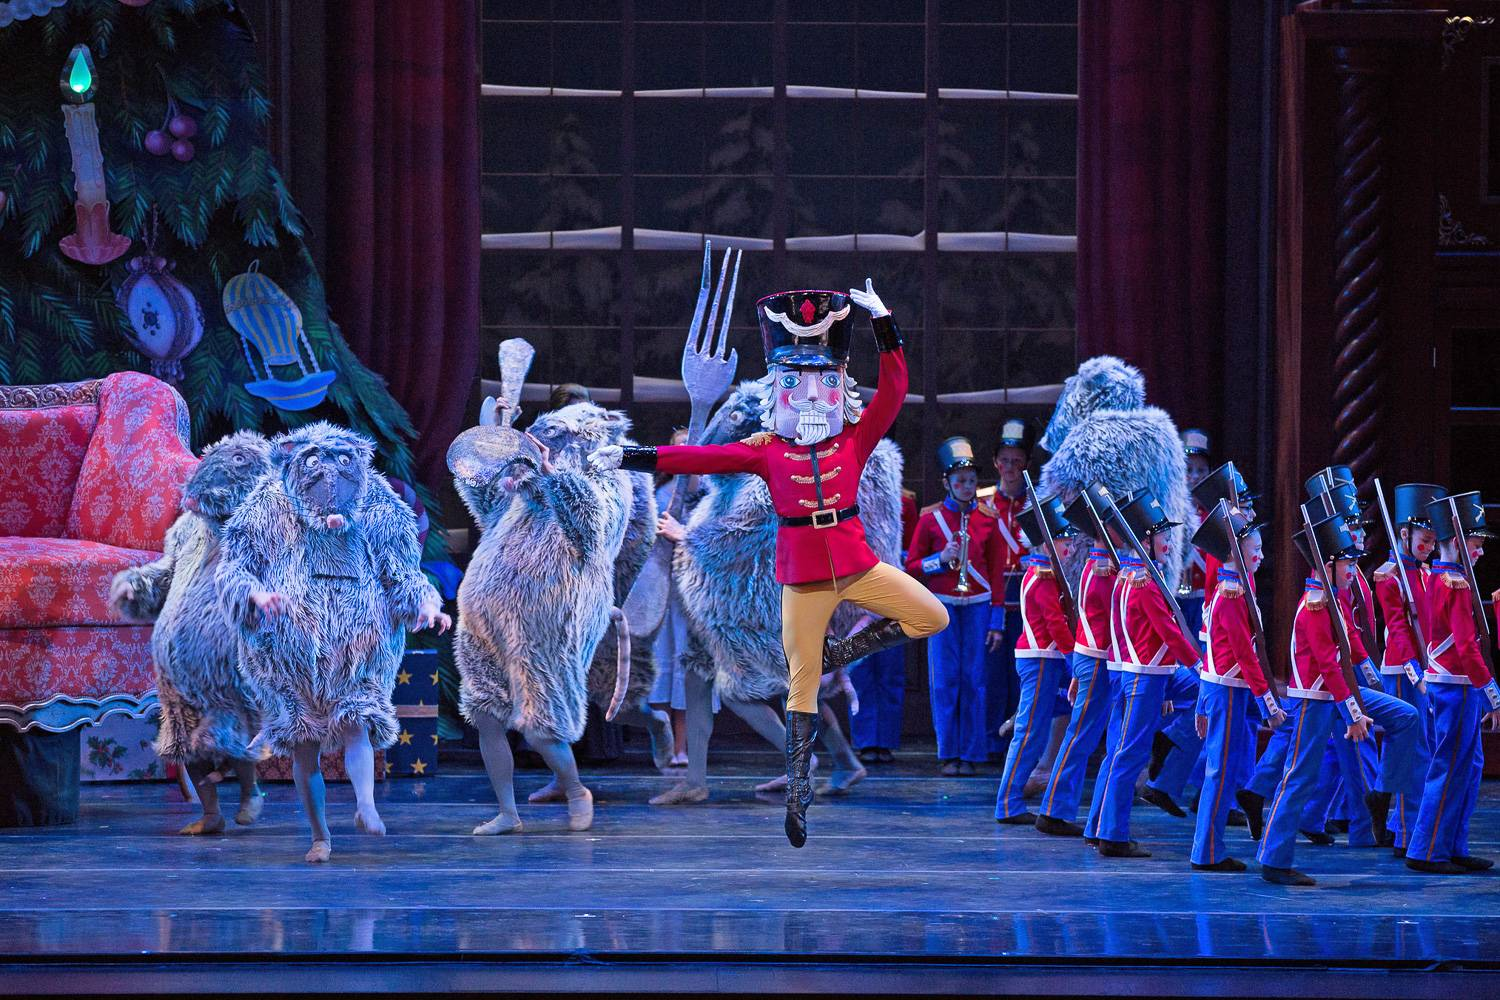 Image of dancers dressed as toy soldiers and mice in The Nutcracker Ballet